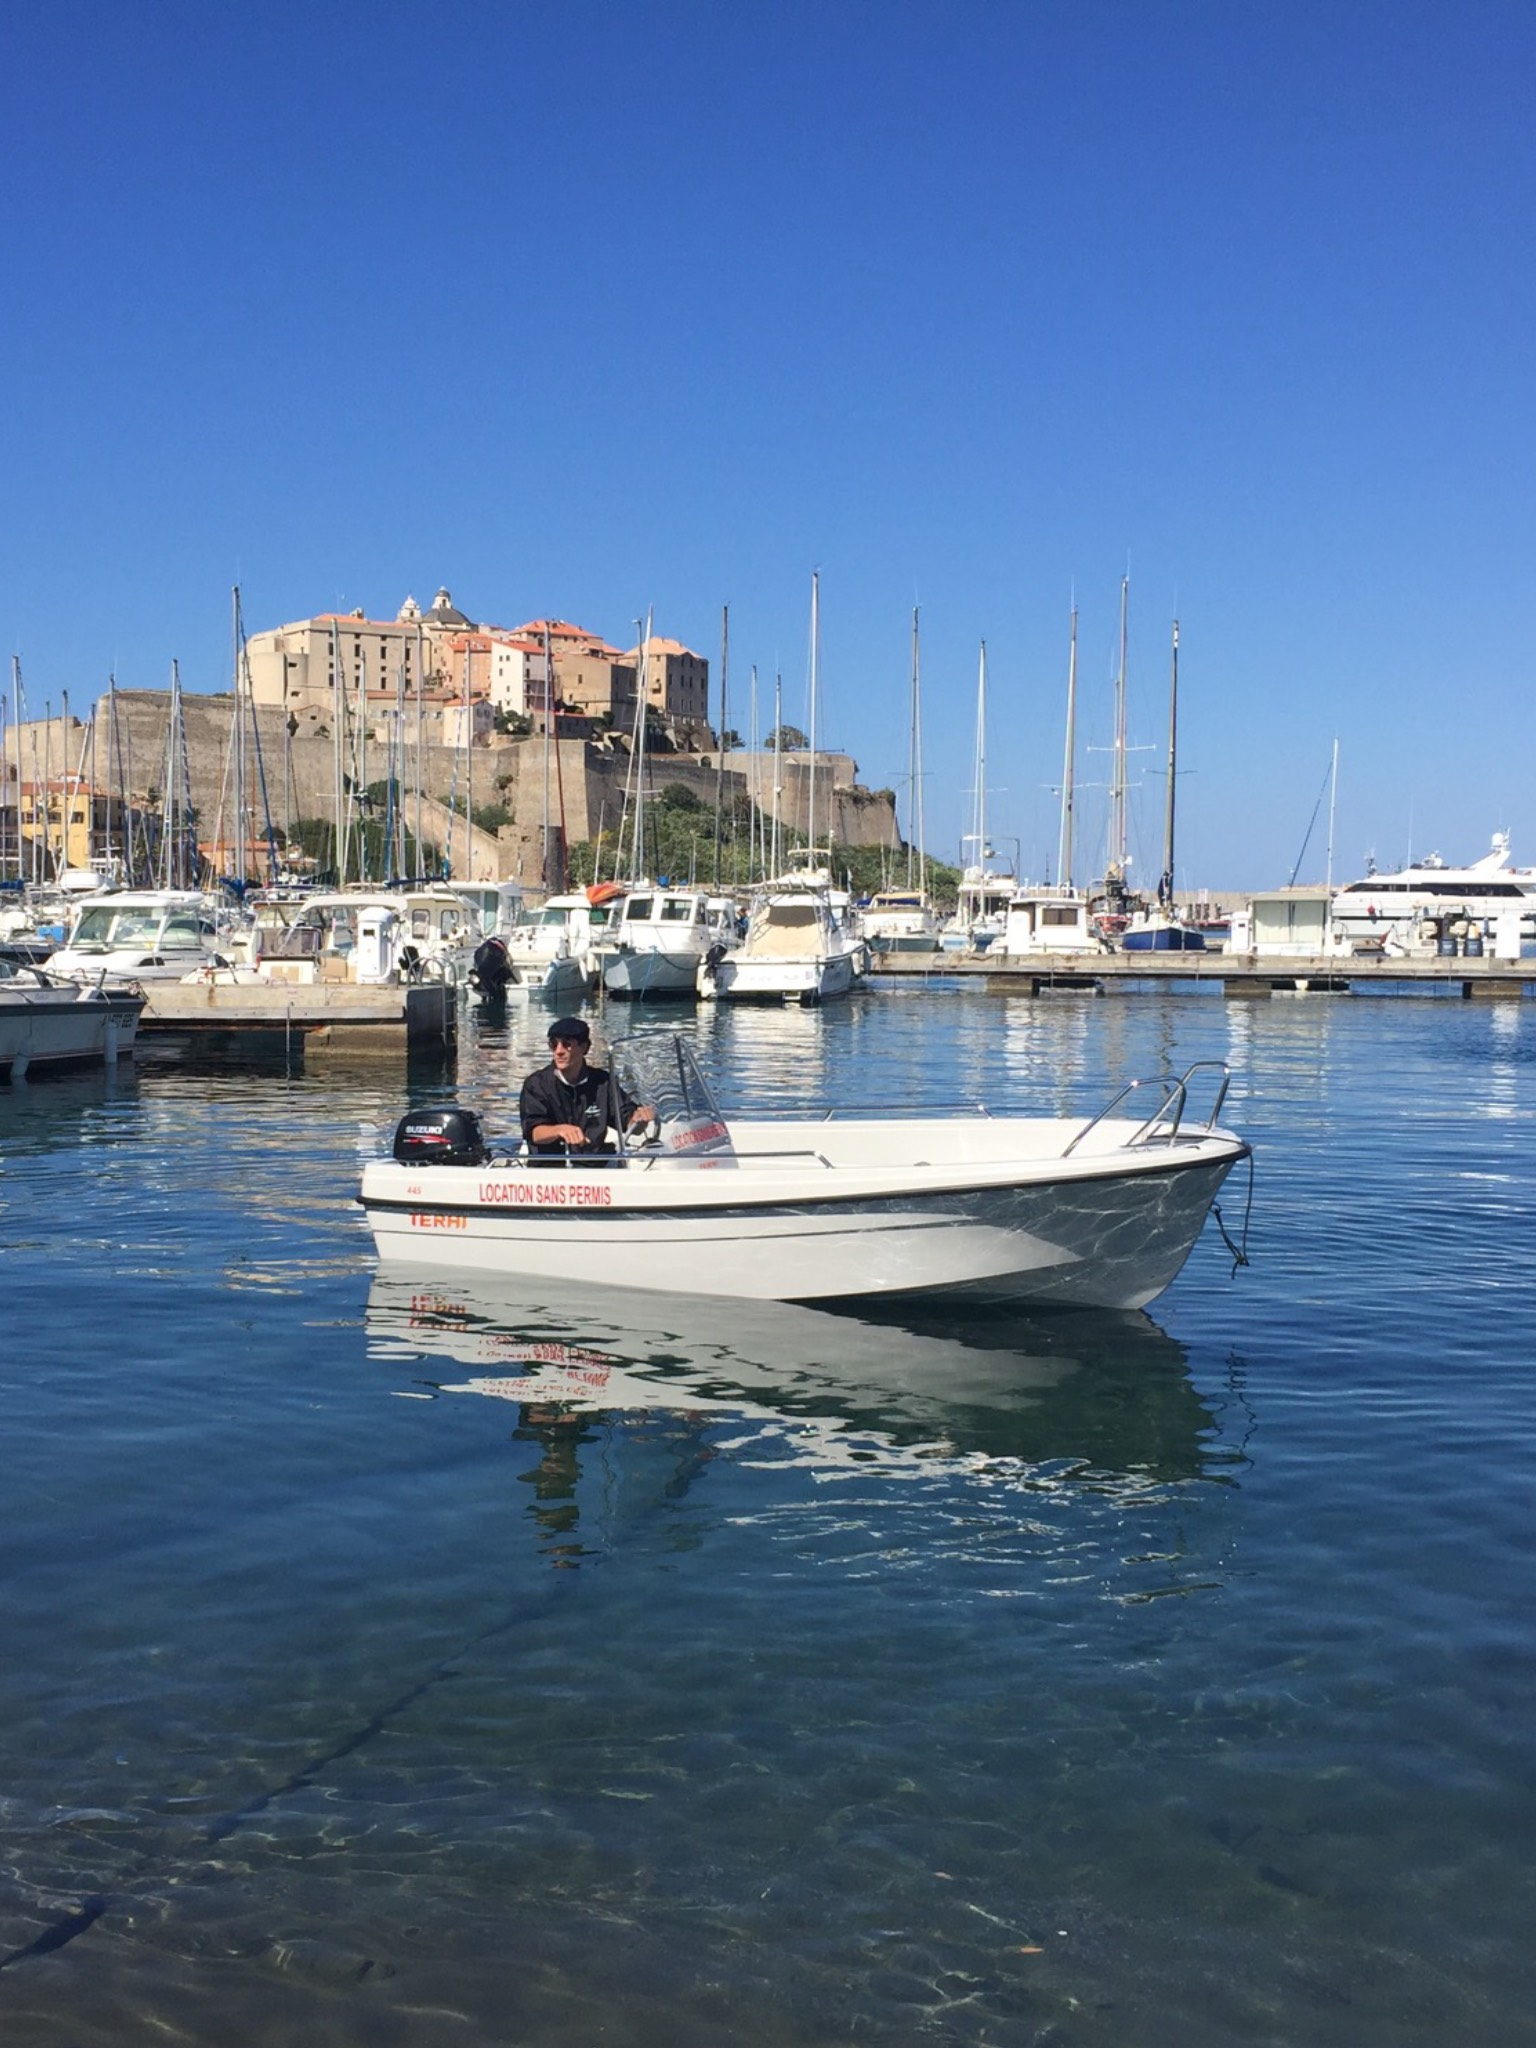 d u00e9part de calvi - theri 445 6cv